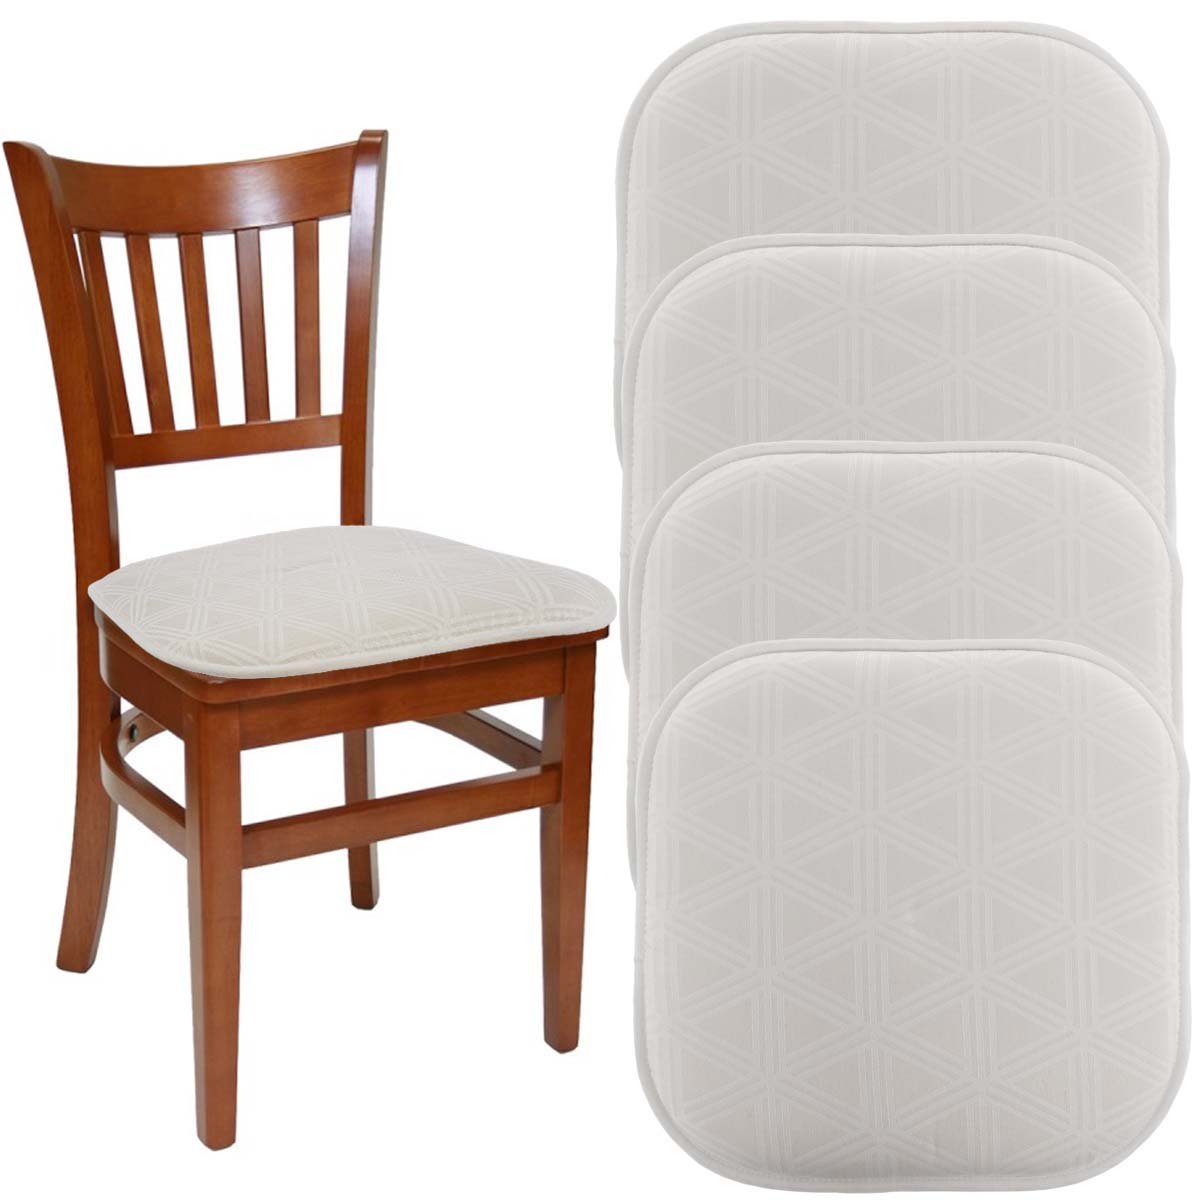 Dream Home (Set Of 4) Gripper Chair Pads For Office Chairs, 16u201d X 16u201d  Indoor Seat Cushion For Kitchen Chairs, Seat Pillow For Rocking Chair,  Dining Chair ...